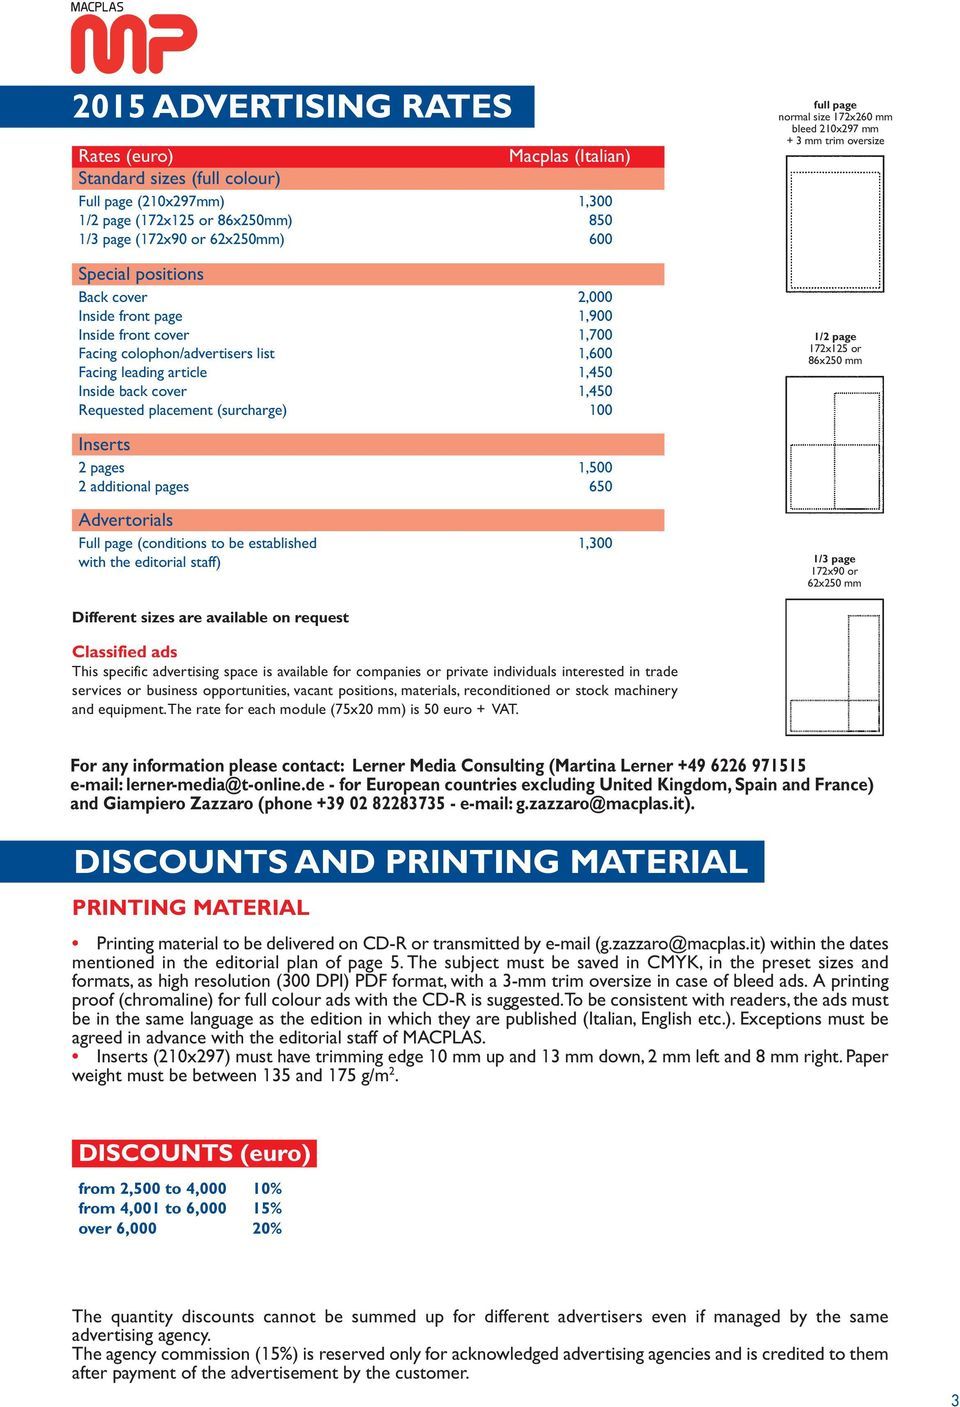 page normal size 172x260 mm bleed 210x297 mm + 3 mm trim oversize 1/2 page 172x125 or 86x250 mm Inserts 2 pages 1,500 2 additional pages 650 Advertorials Full page (conditions to be established 1,300